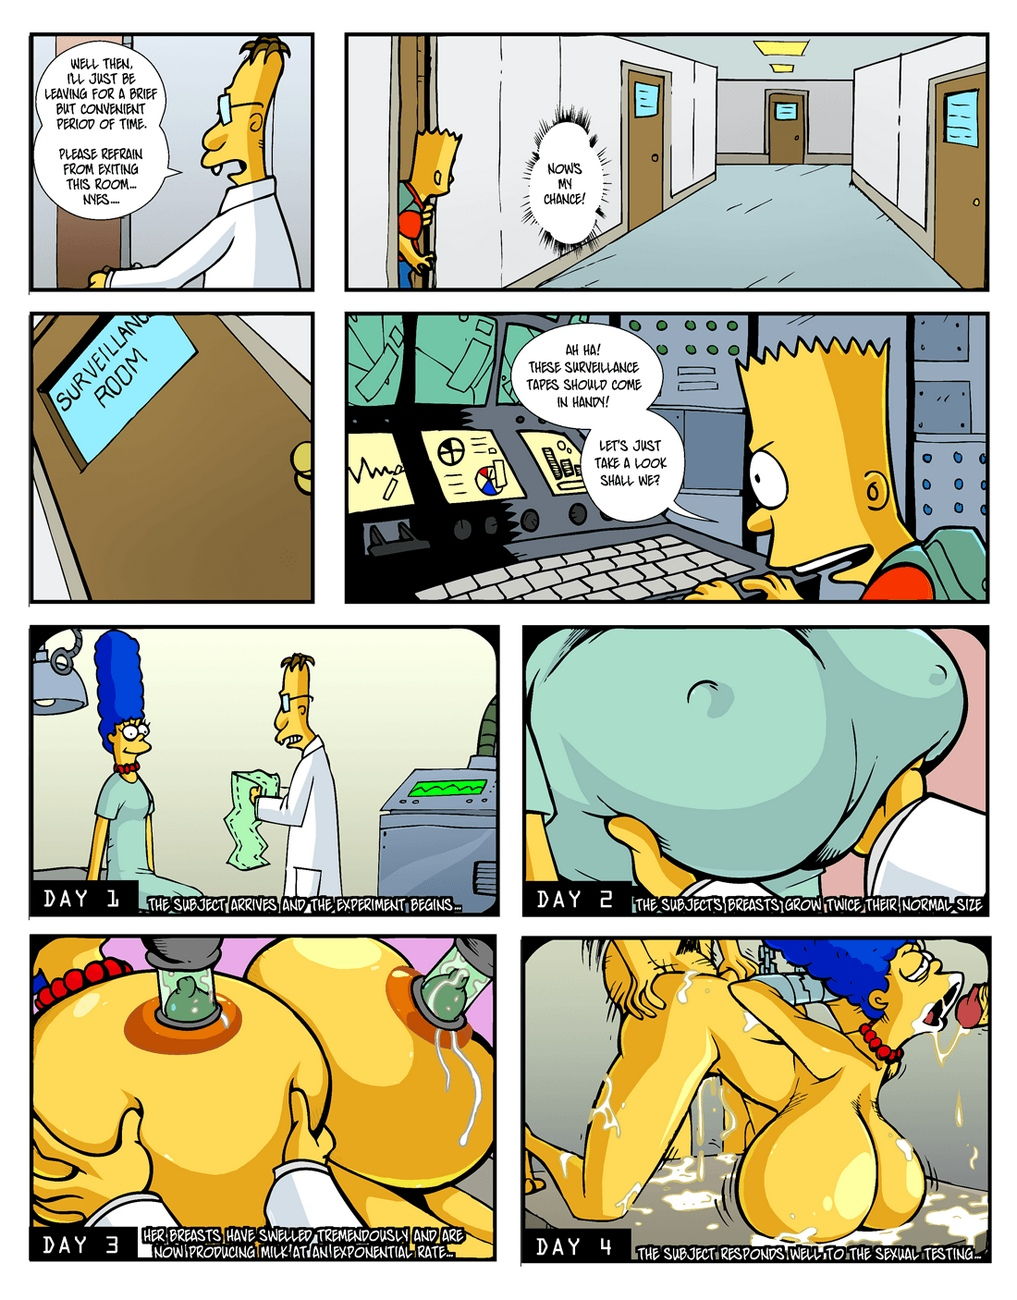 Simpcest-1 12 free sex comic